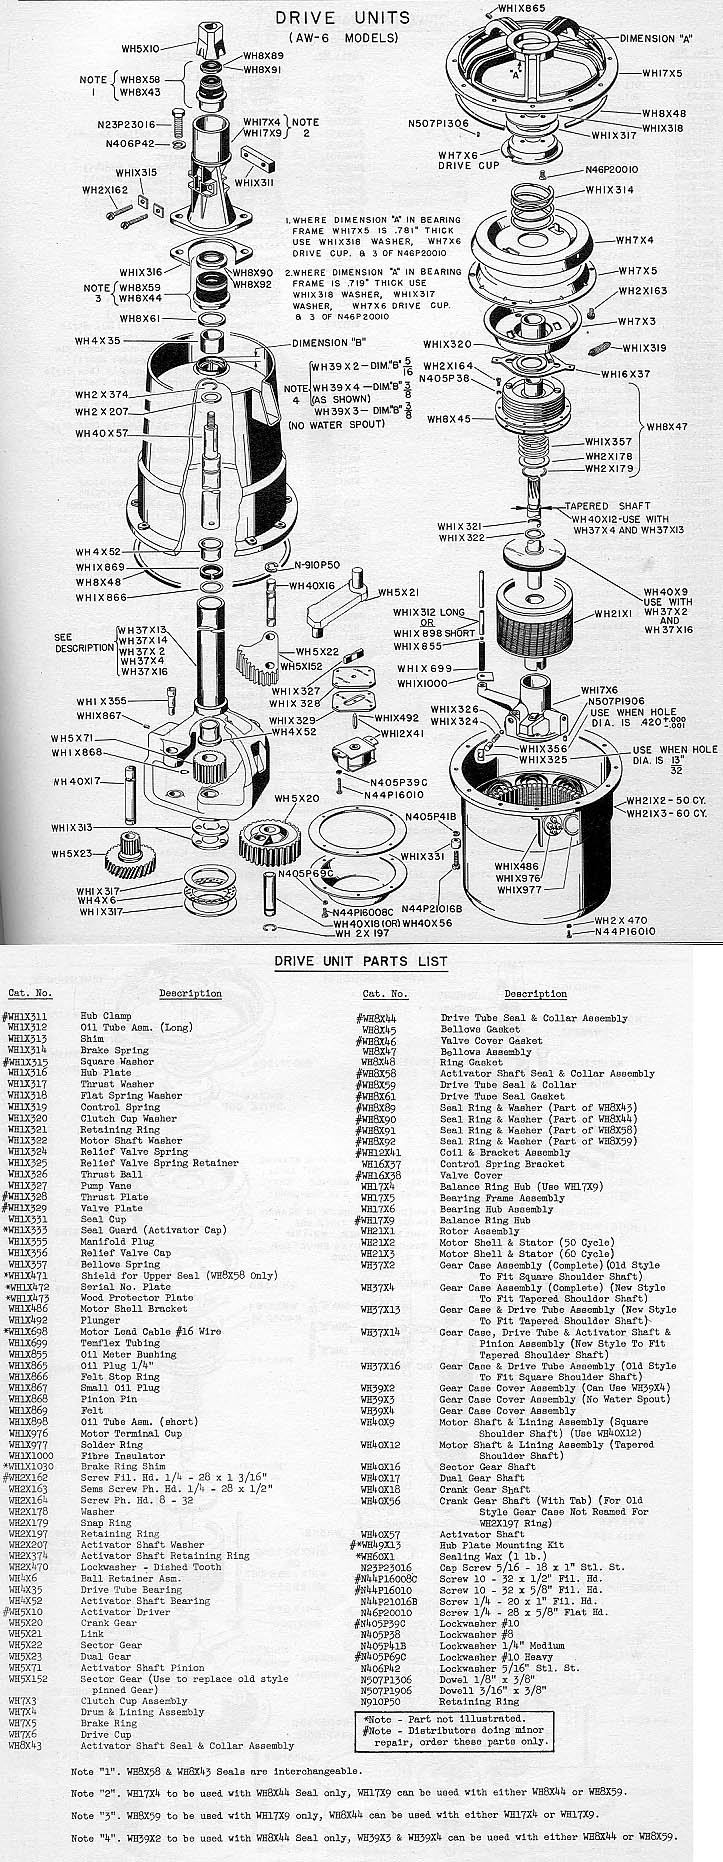 medium resolution of 1947 general electric aw6 washer transmission explanation 1951 ge washer i hope this is the before shot chart showing water flow in 1958 ge filter flo